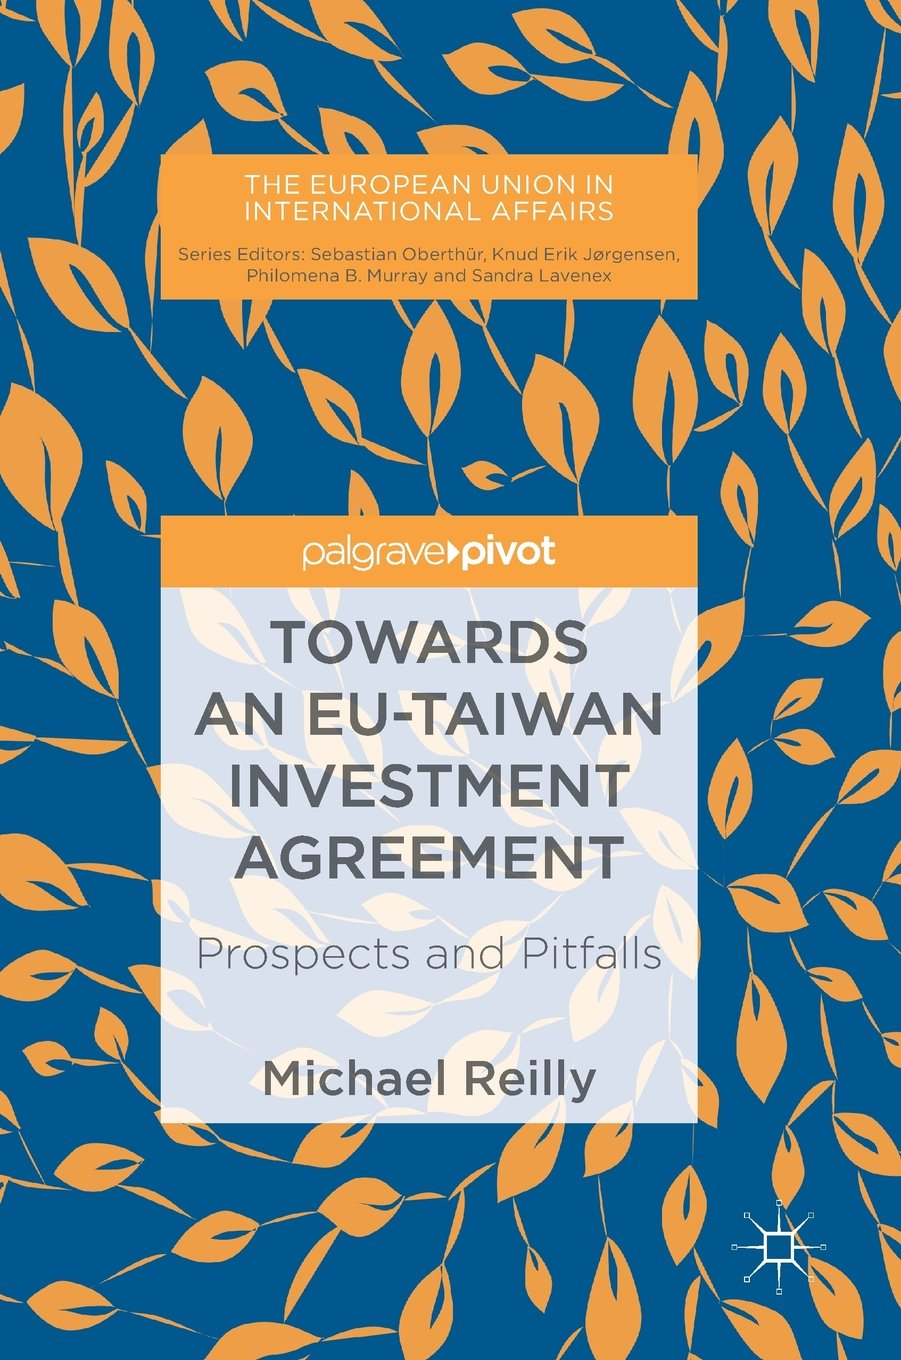 Read Online Towards an EU-Taiwan Investment Agreement: Prospects and Pitfalls (The European Union in International Affairs) ebook